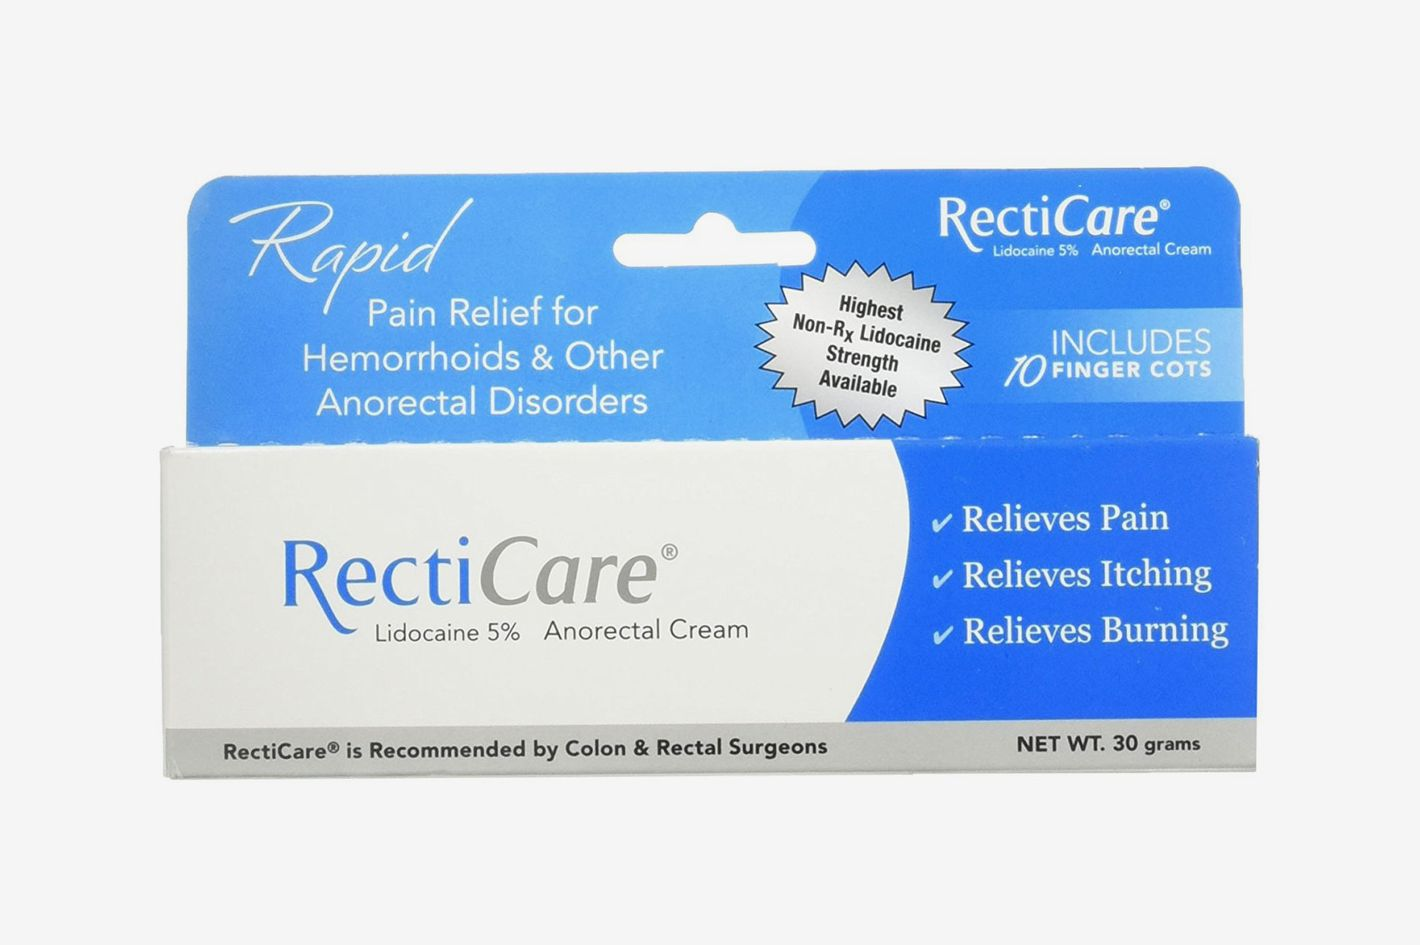 Recticare Pain Relief for Hemorrhoids and Other Anorectal Disorders